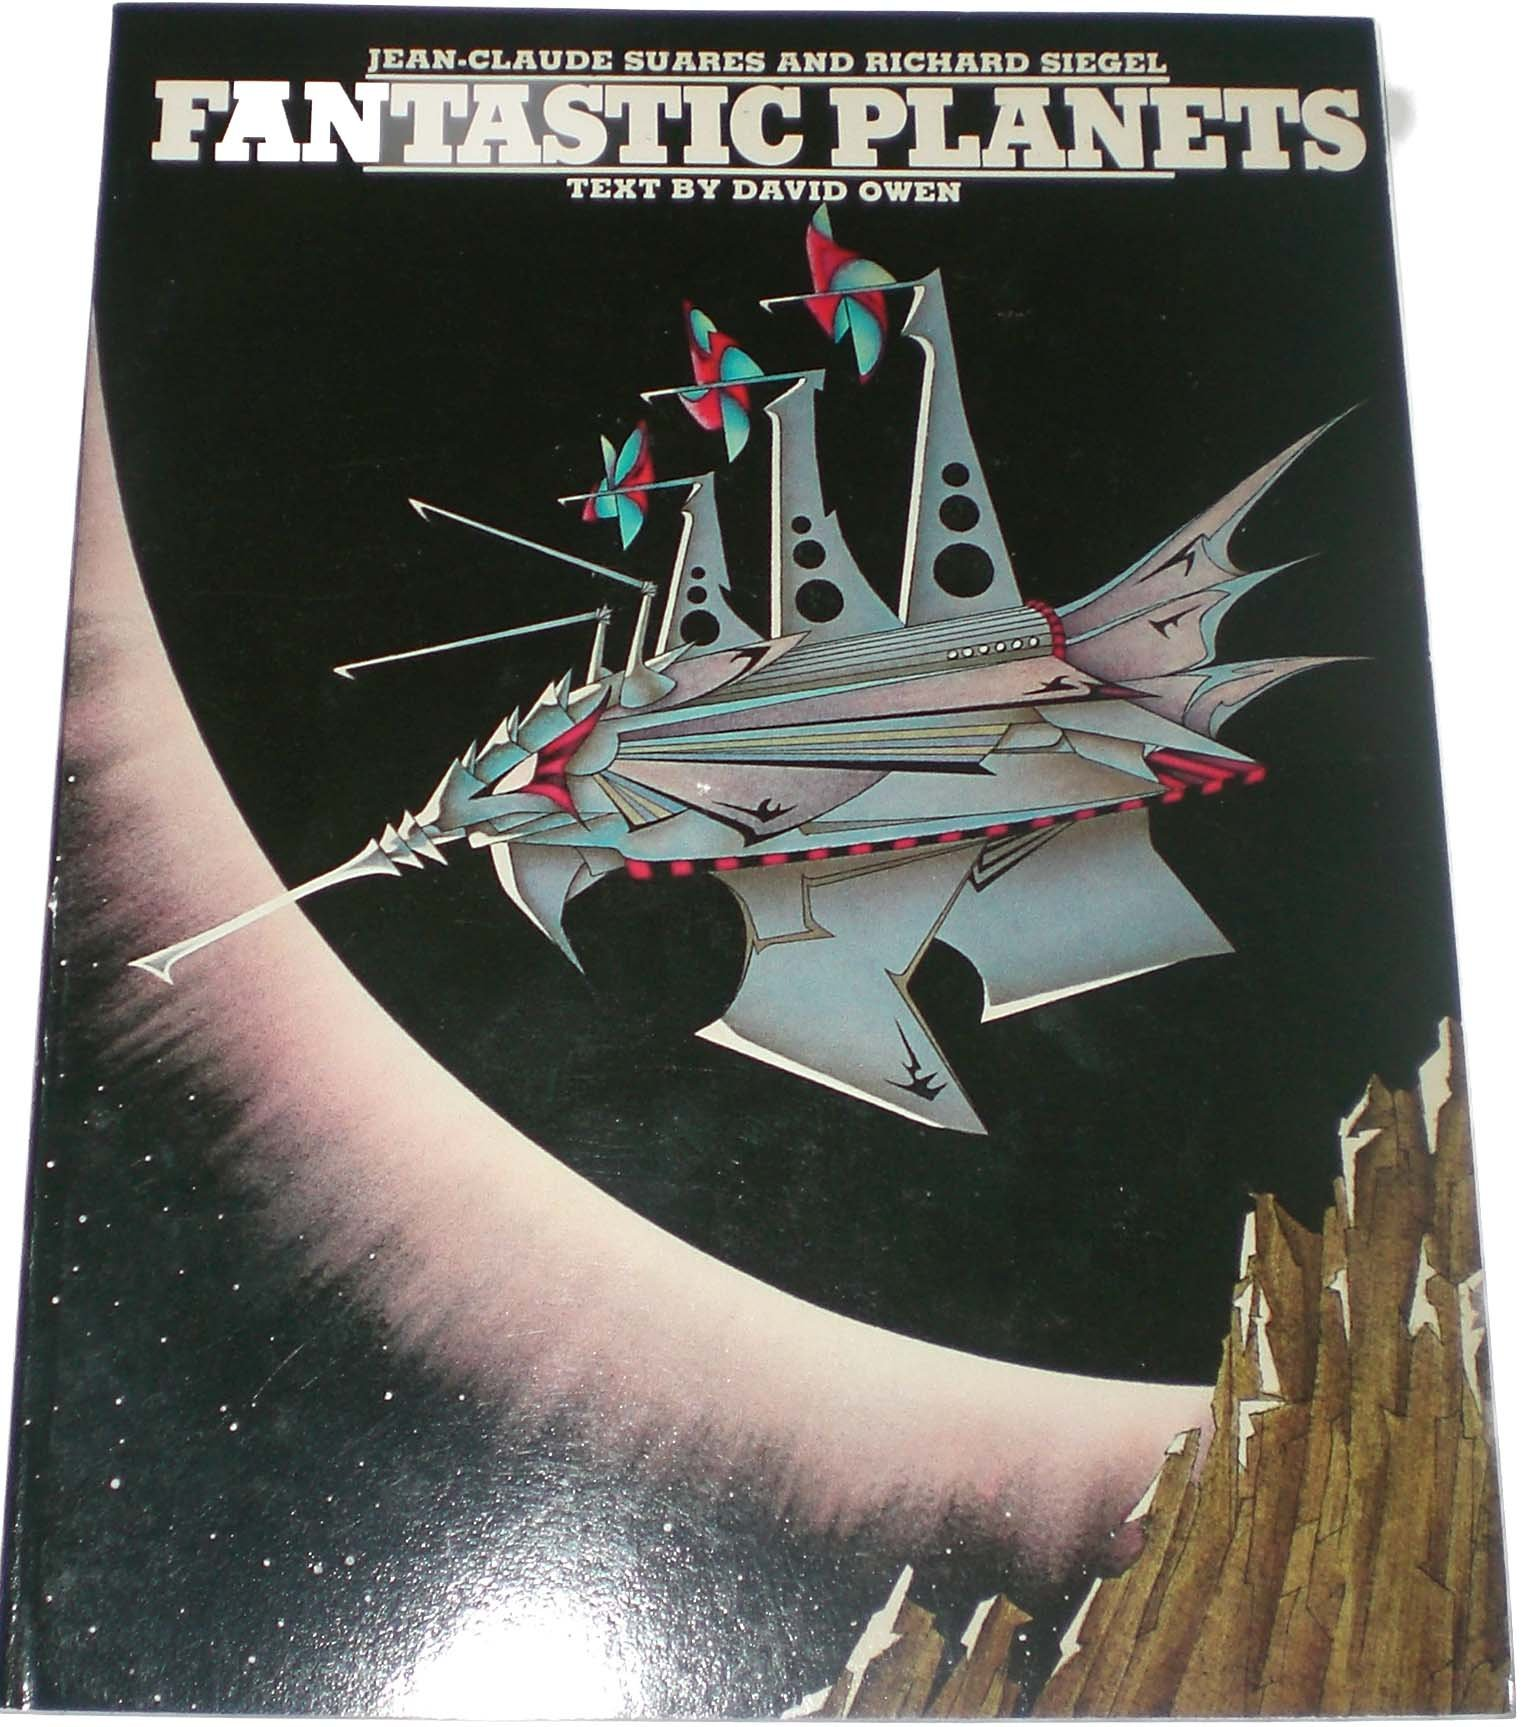 Fantastic Planets, Jean-Claude Suares; Richard Siegel; David Owen